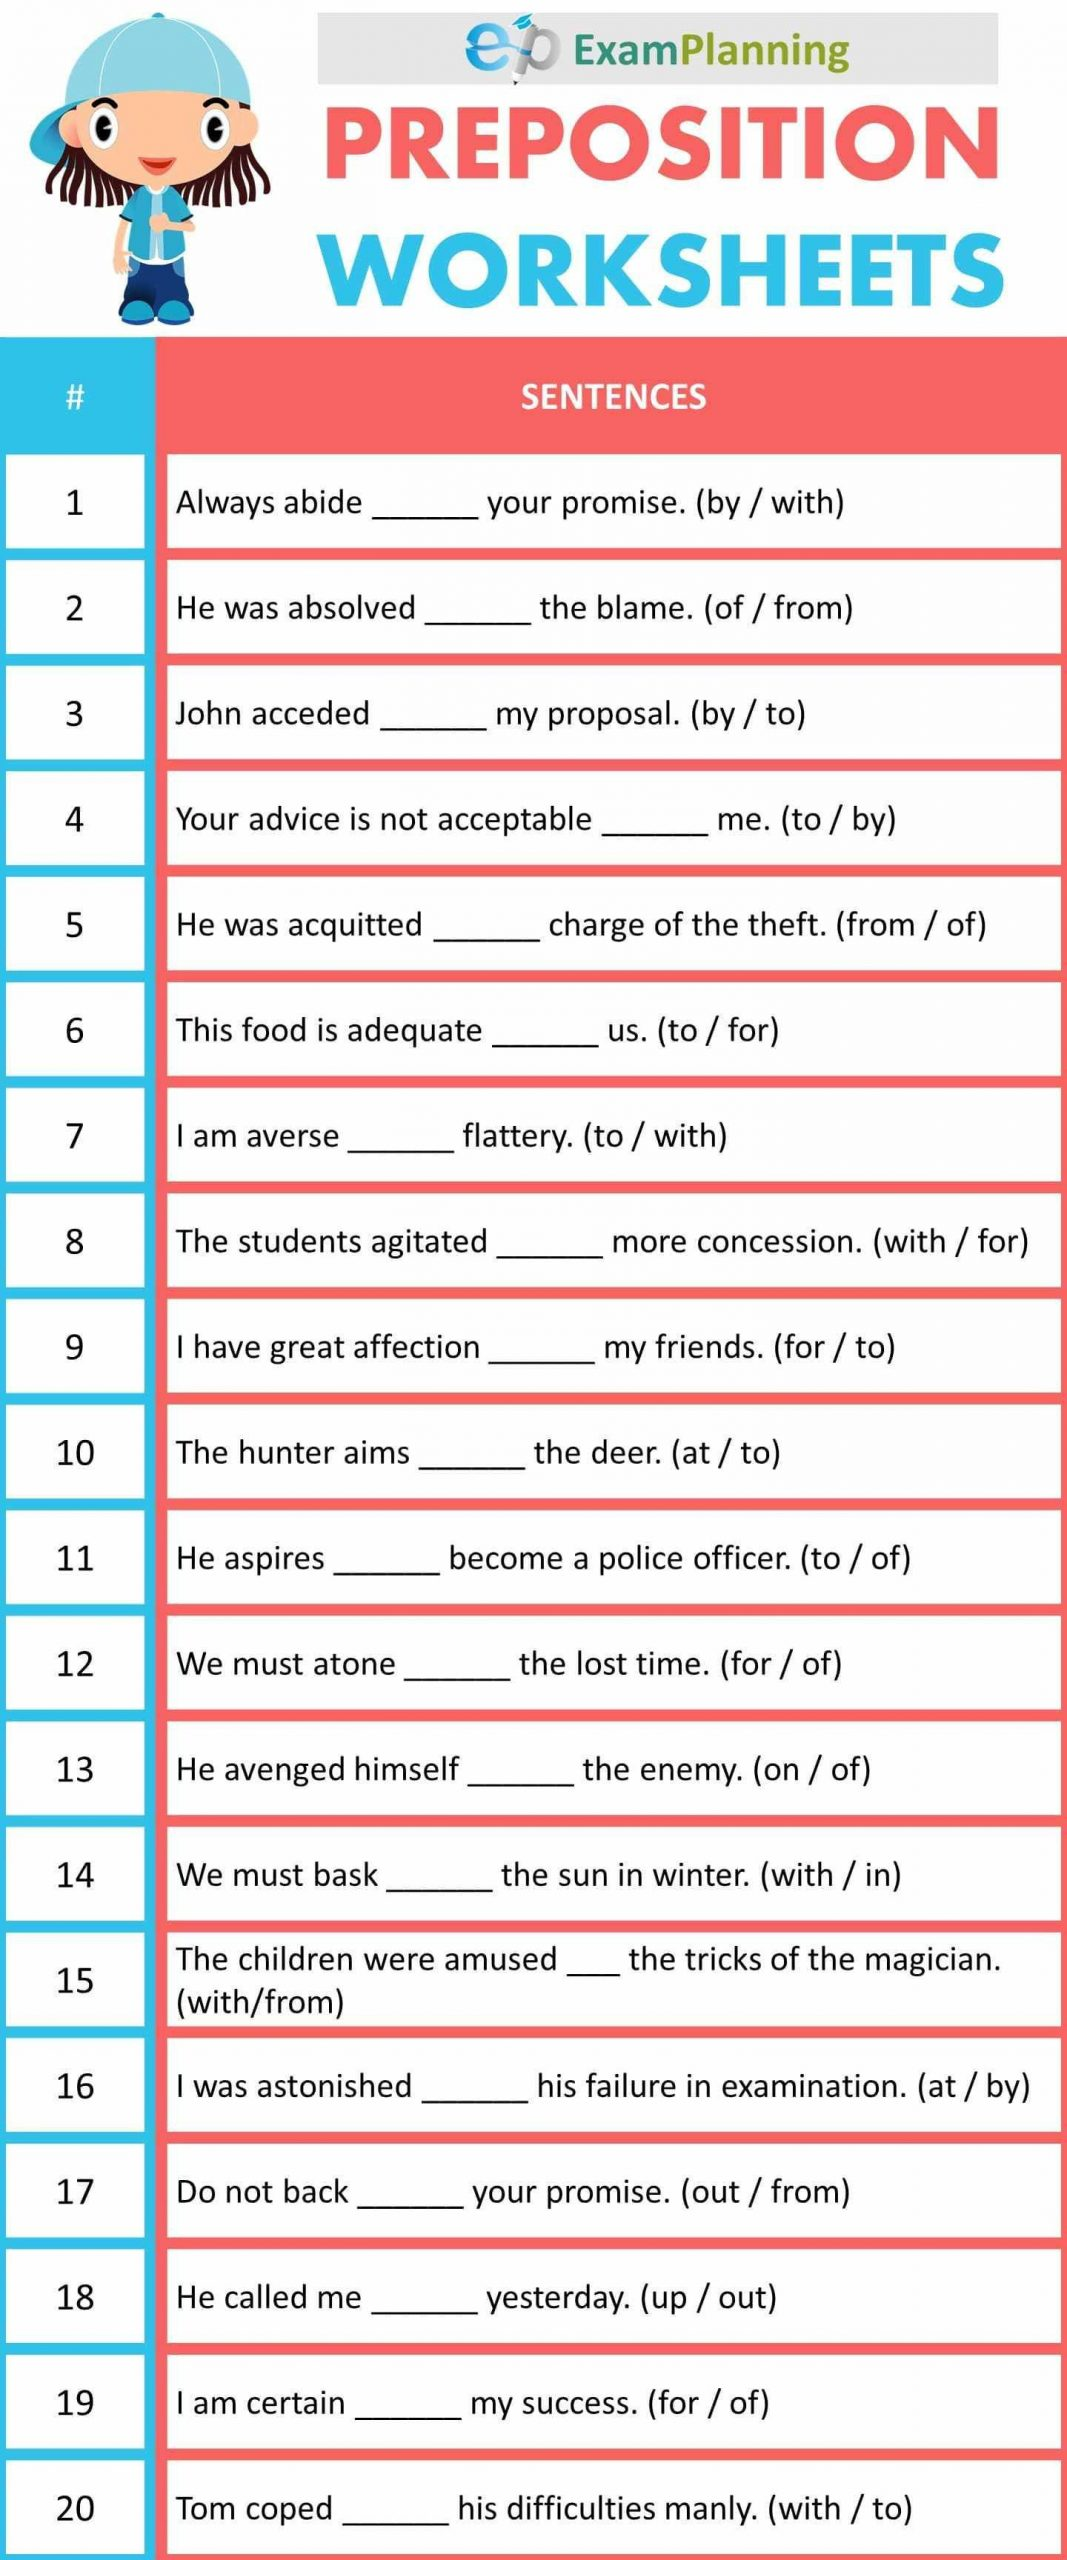 Preposition Worksheets for Middle School Preposition Worksheets In 2020 with Images